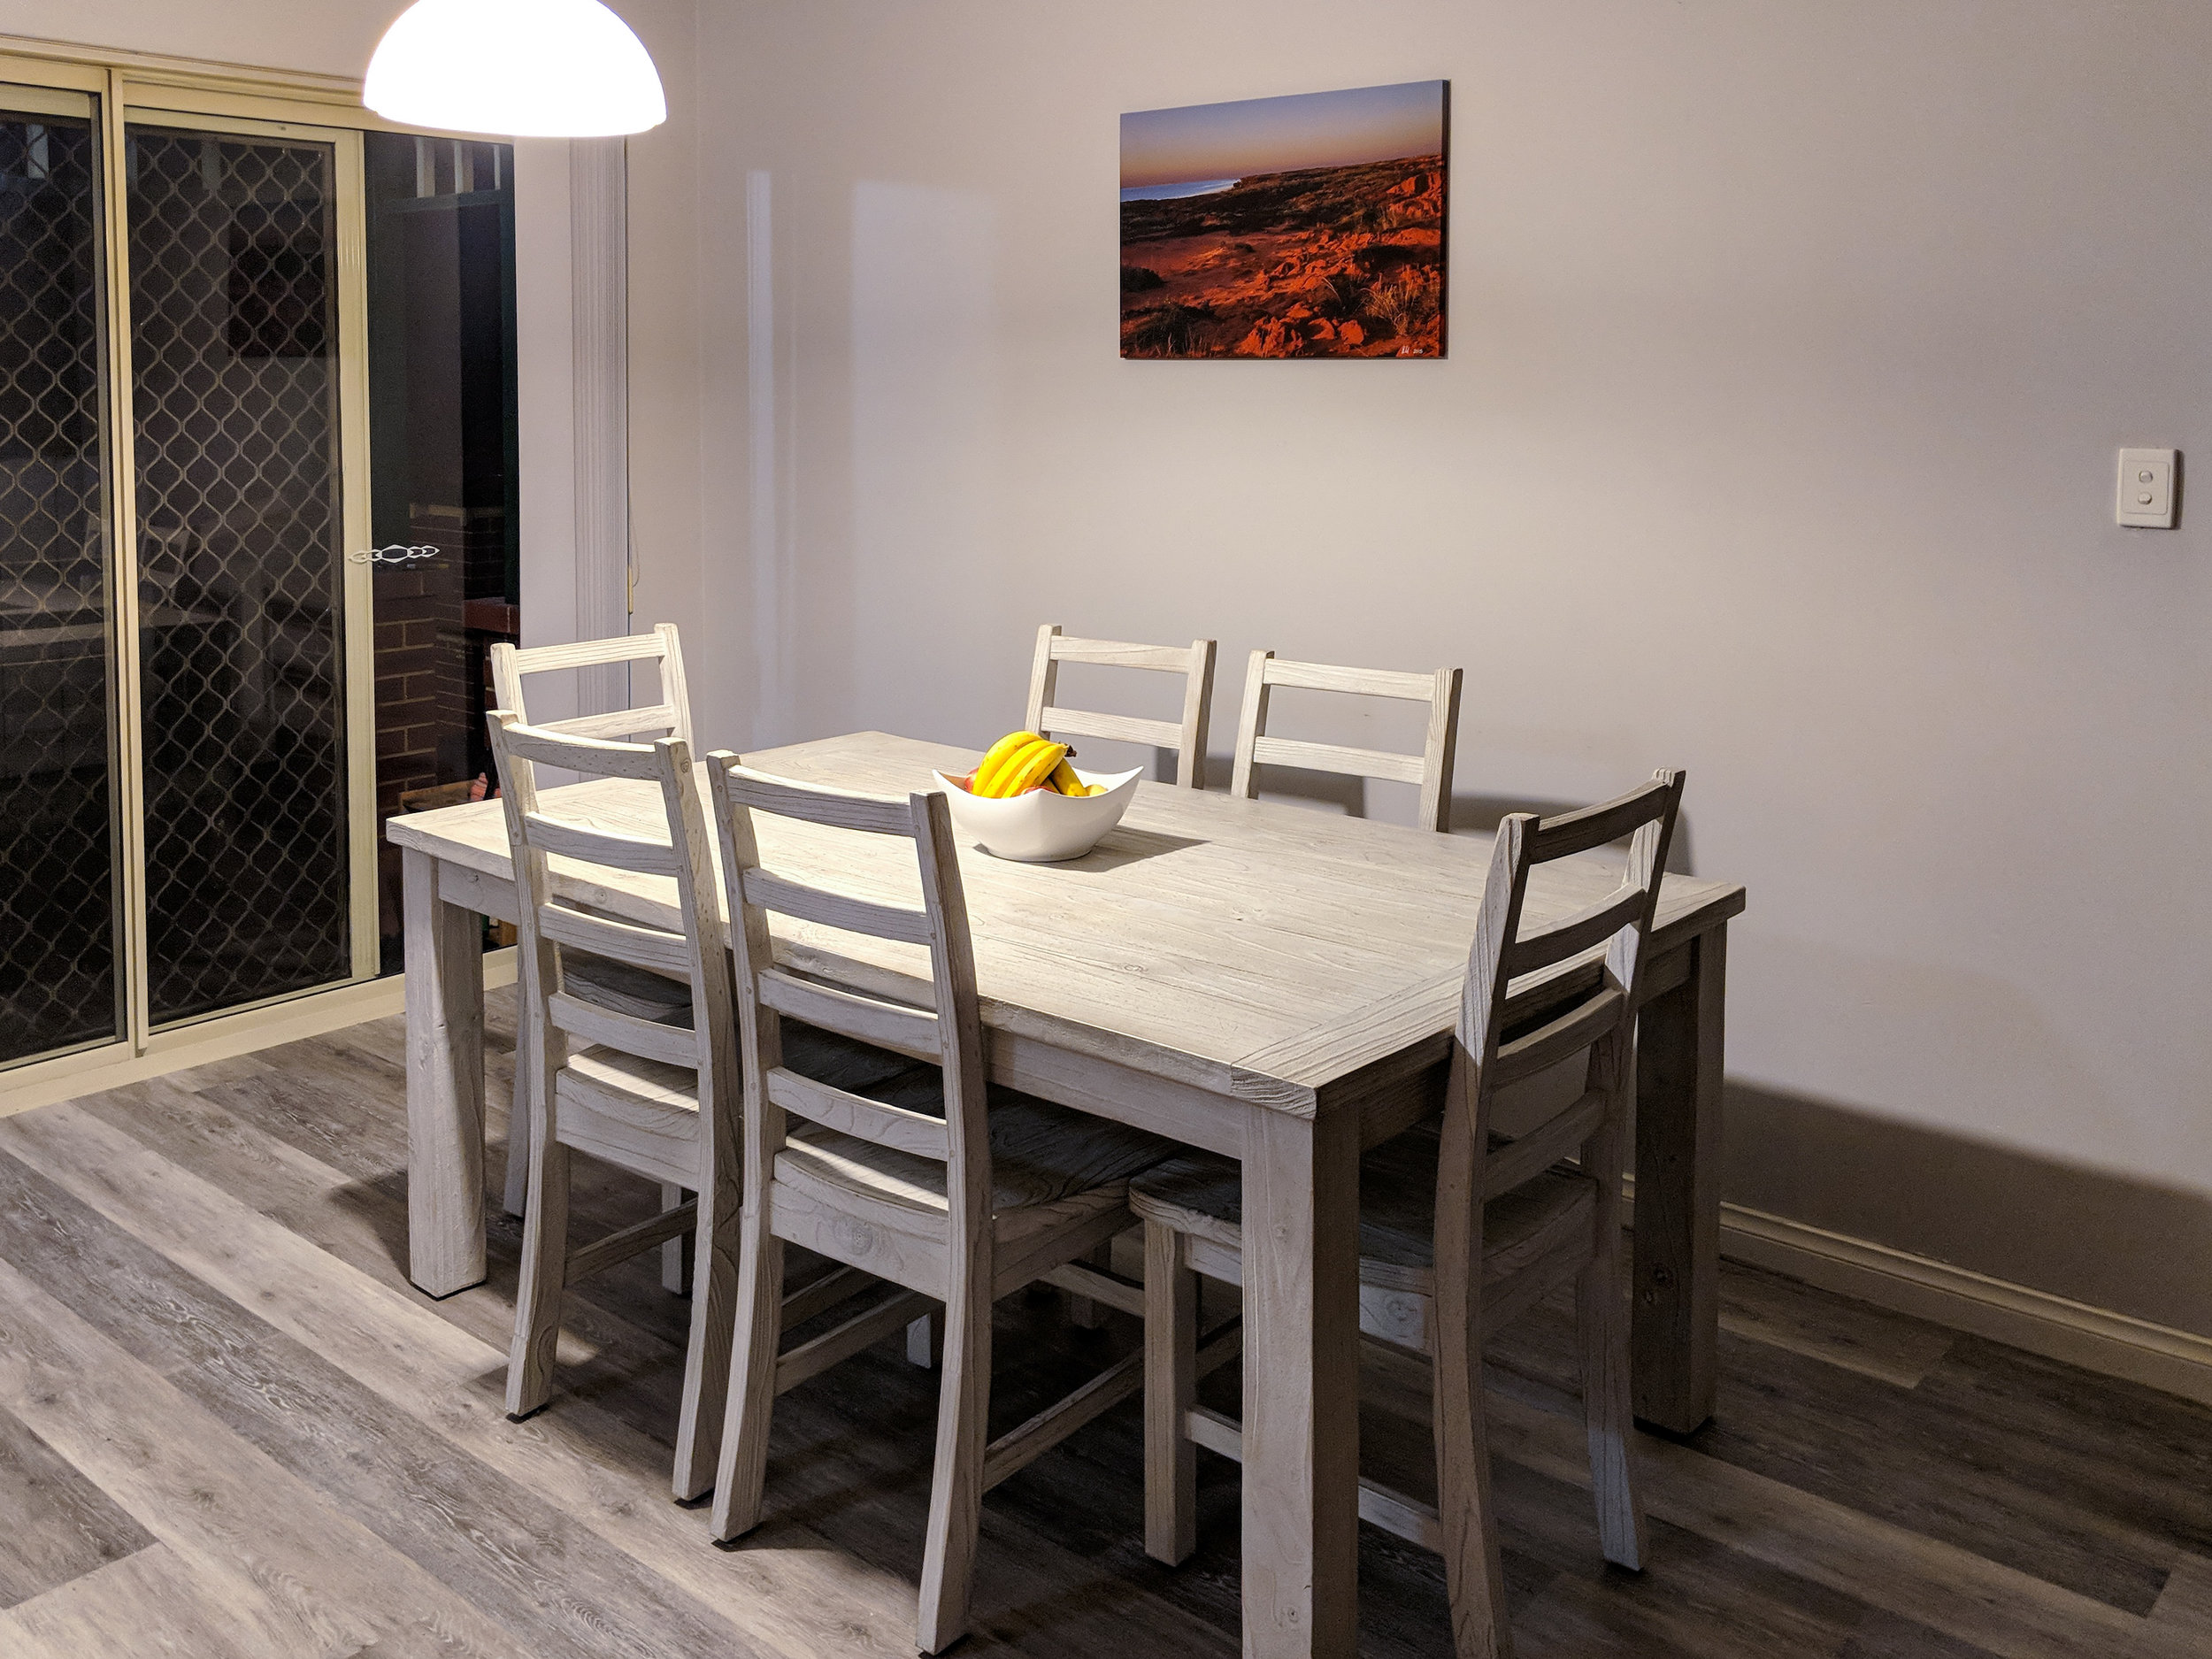 Gallery Wrapped Canvas wall art in dining room.